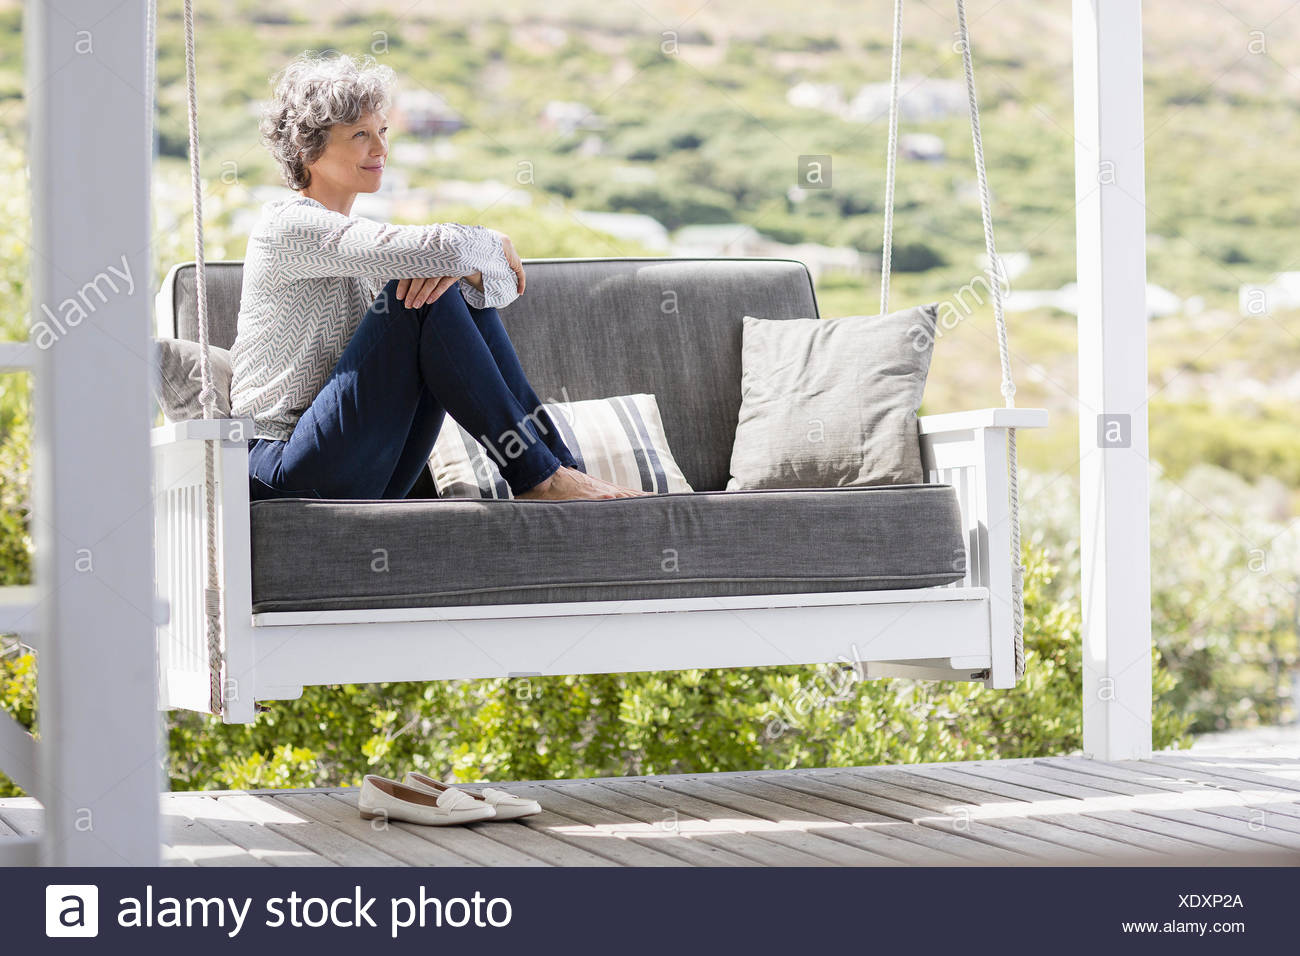 Mature woman sitting on a swing in a porch - Stock Image